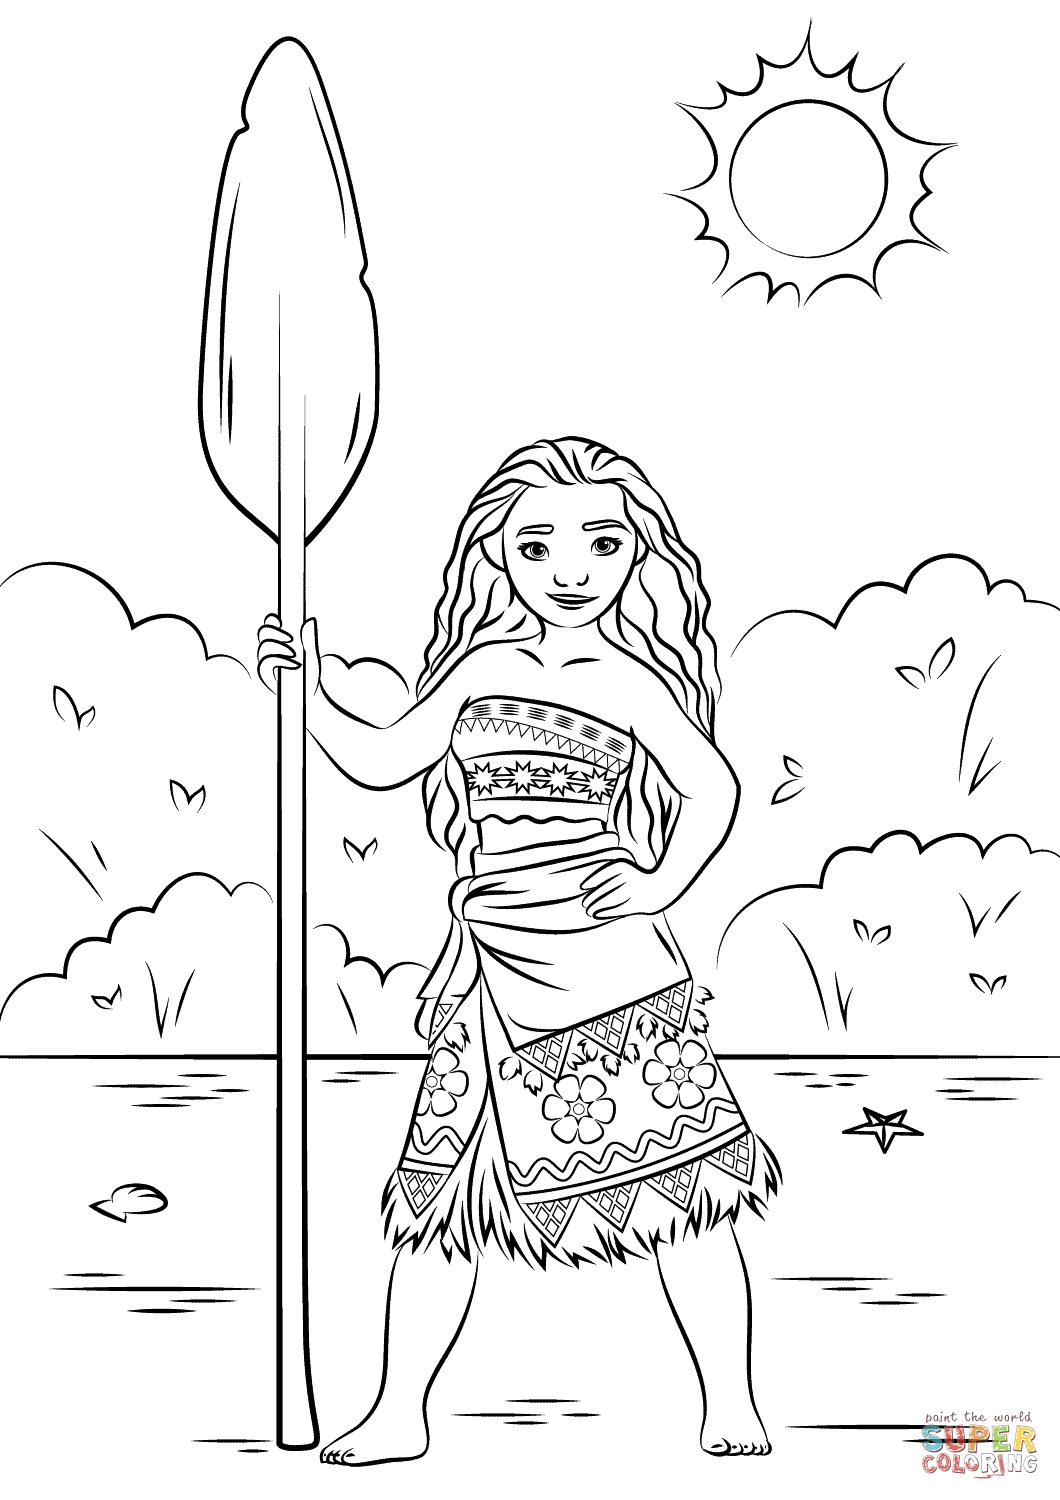 Coloring Pages Moana - Moana Free Colouring Pages